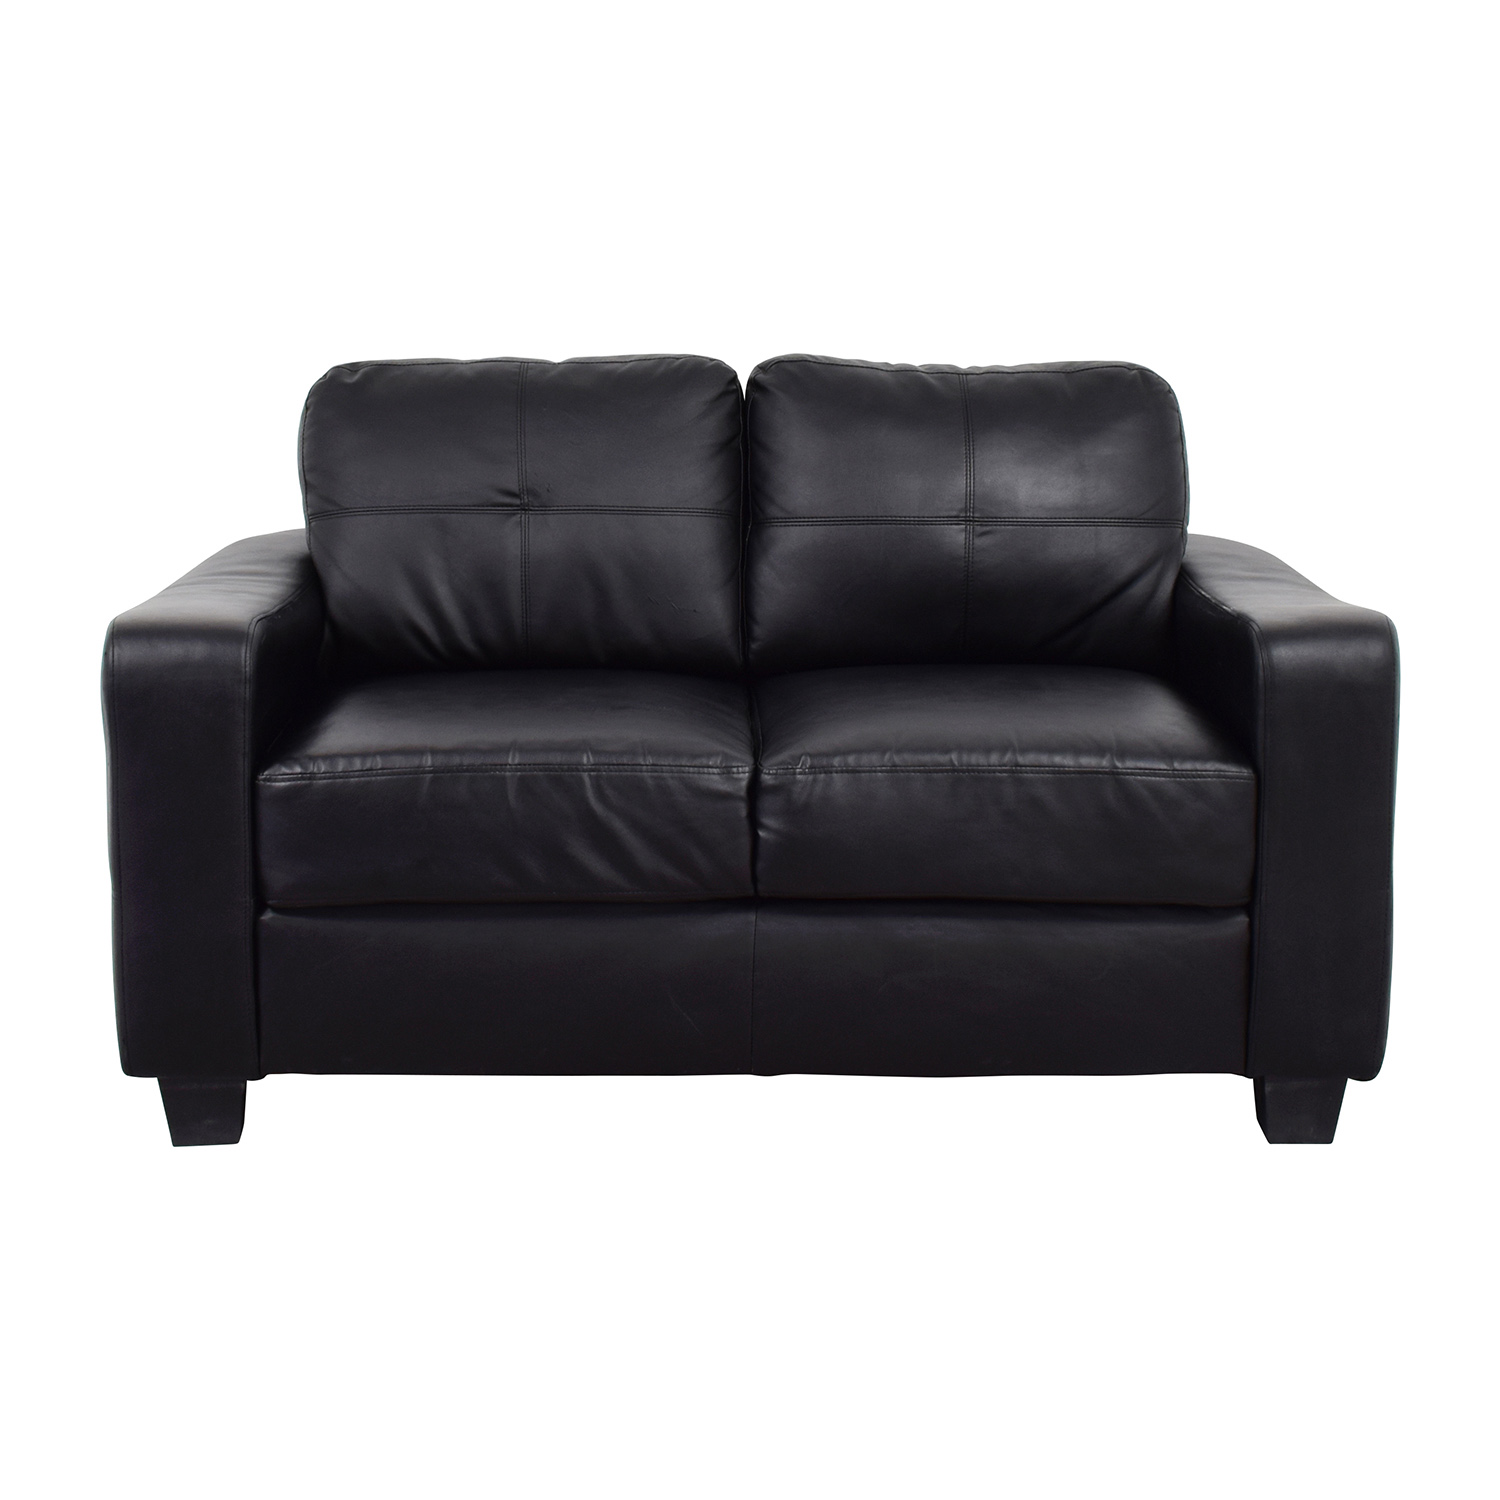 Leather Loveseat 79 Off Black Bonded Leather Loveseat Sofas